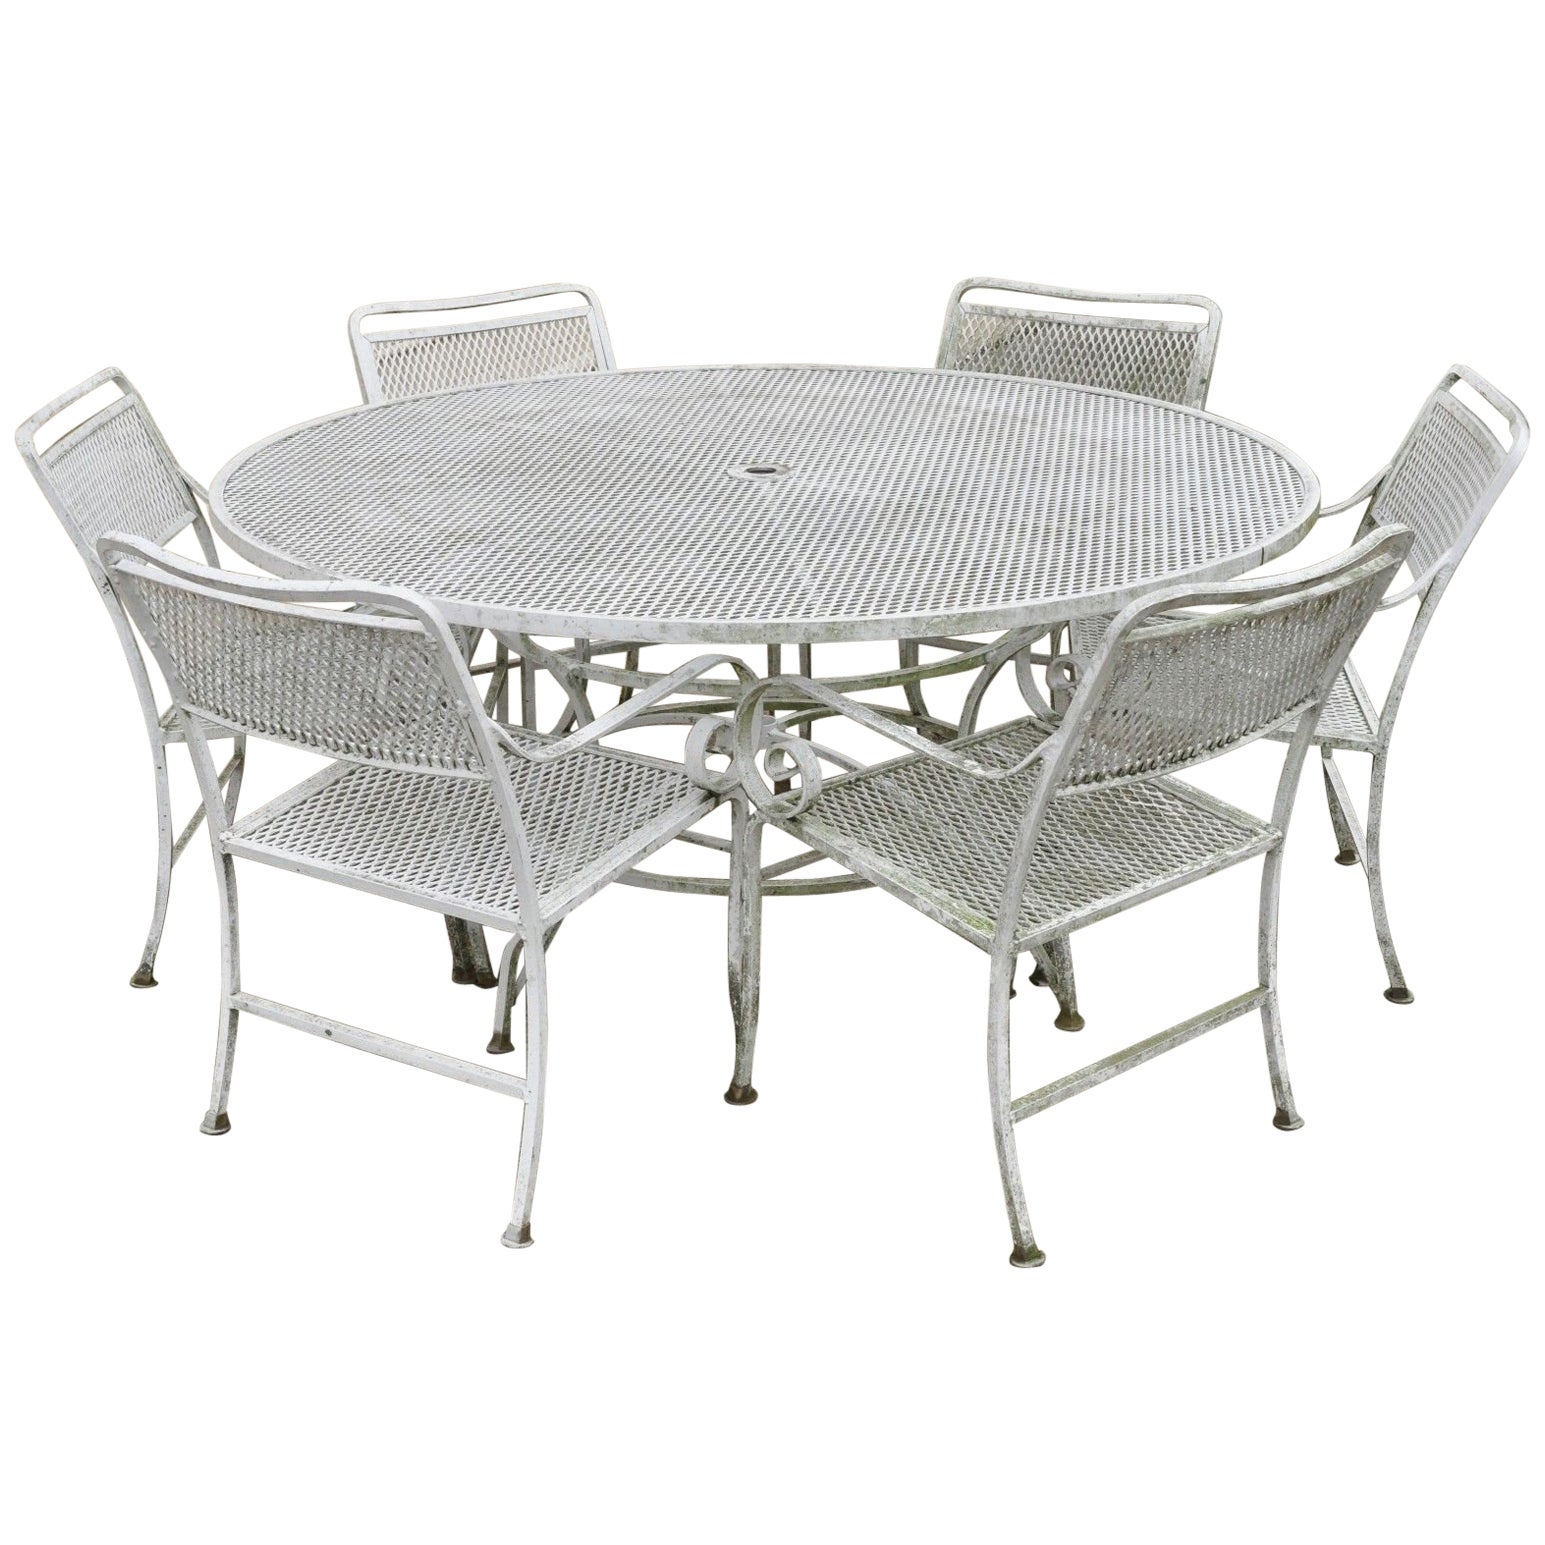 Seven piece cast aluminium scroll arm metal patio dining set table and six chairs for sale at 1stdibs